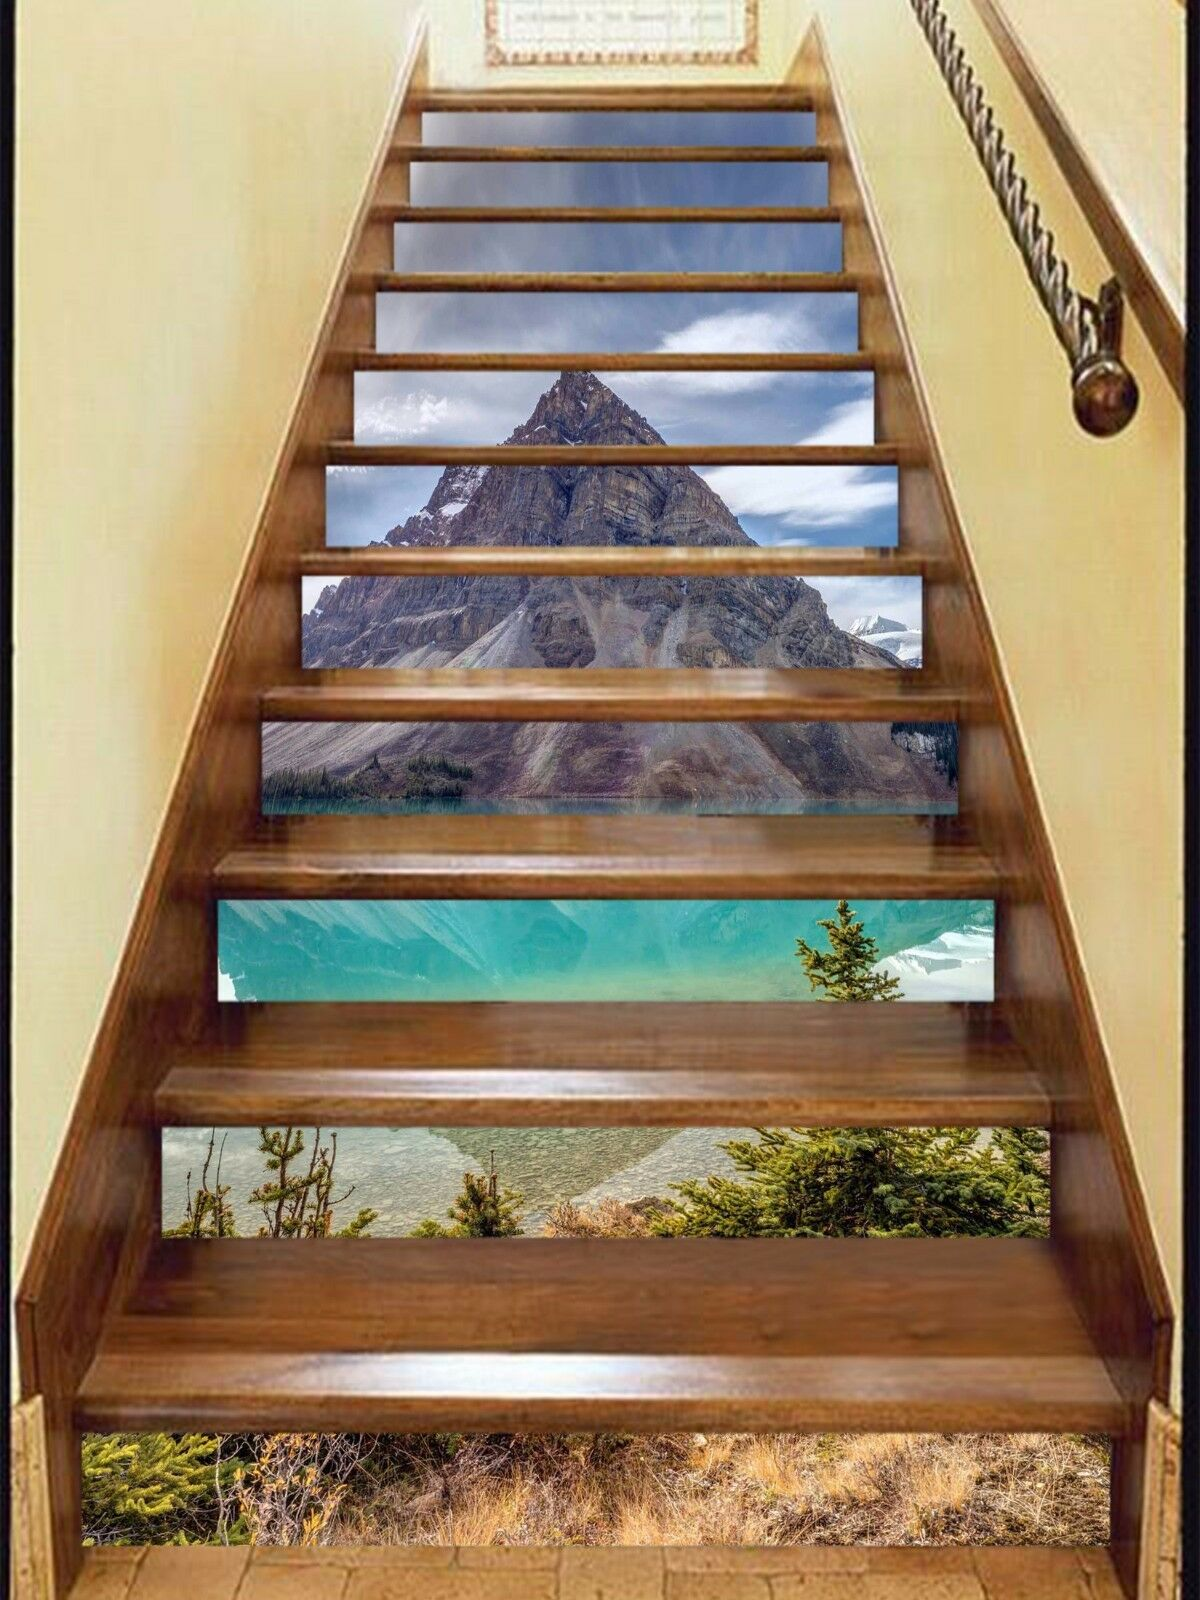 3D Sky mountain 37 Stair Risers Decoration Photo Mural Vinyl Decal Wallpaper UK